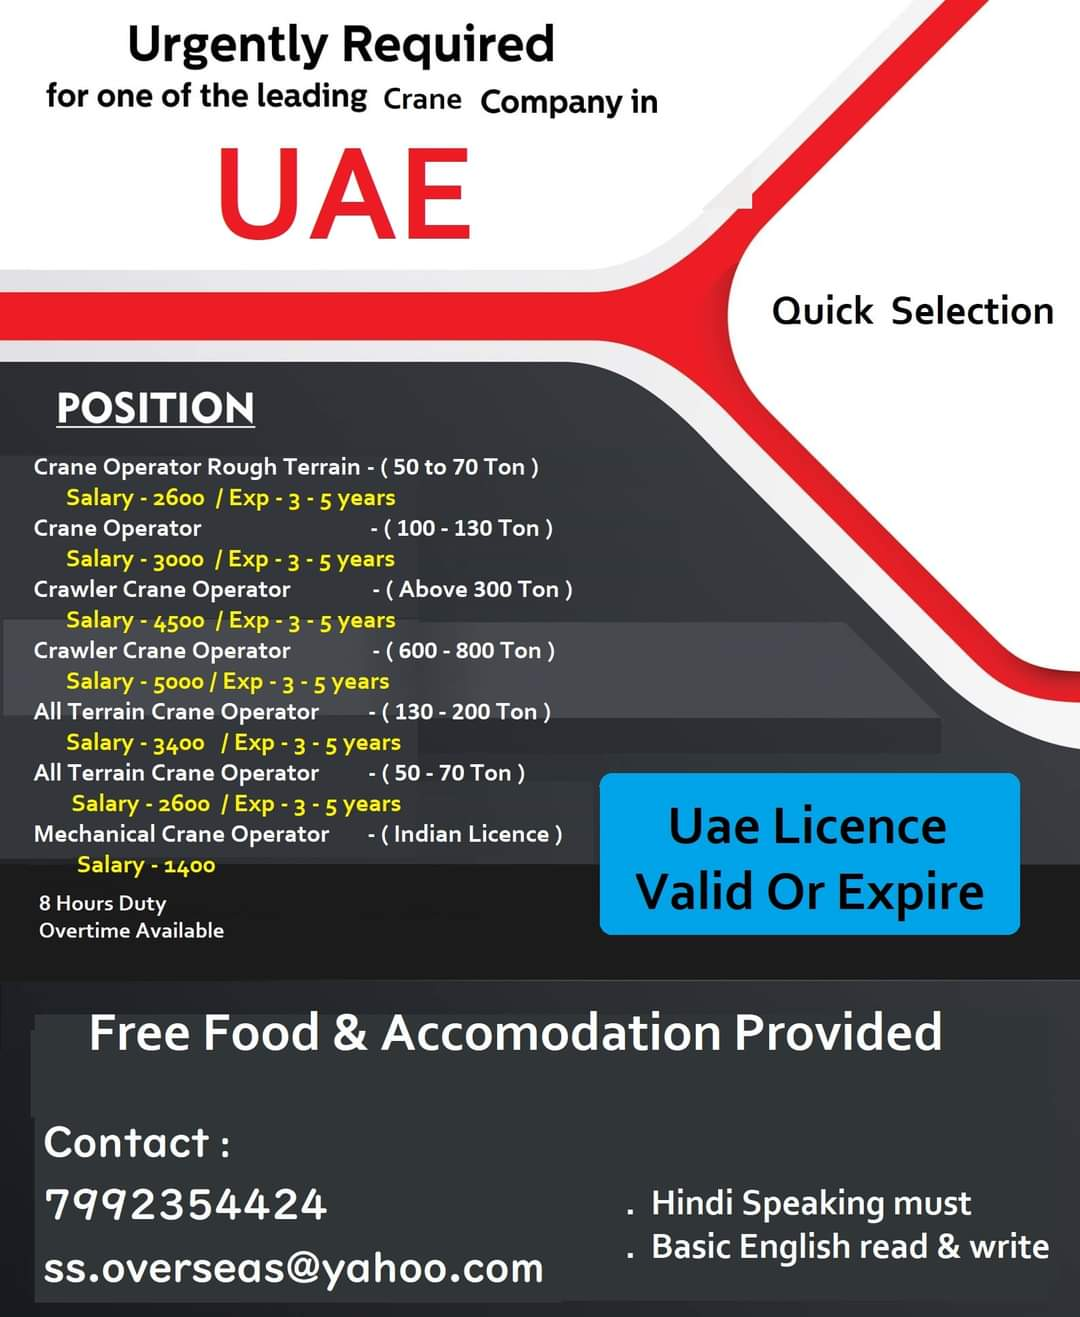 WALK-IN INTERVIEW AT PUNJAB FOR CRANE COMPANY UAE